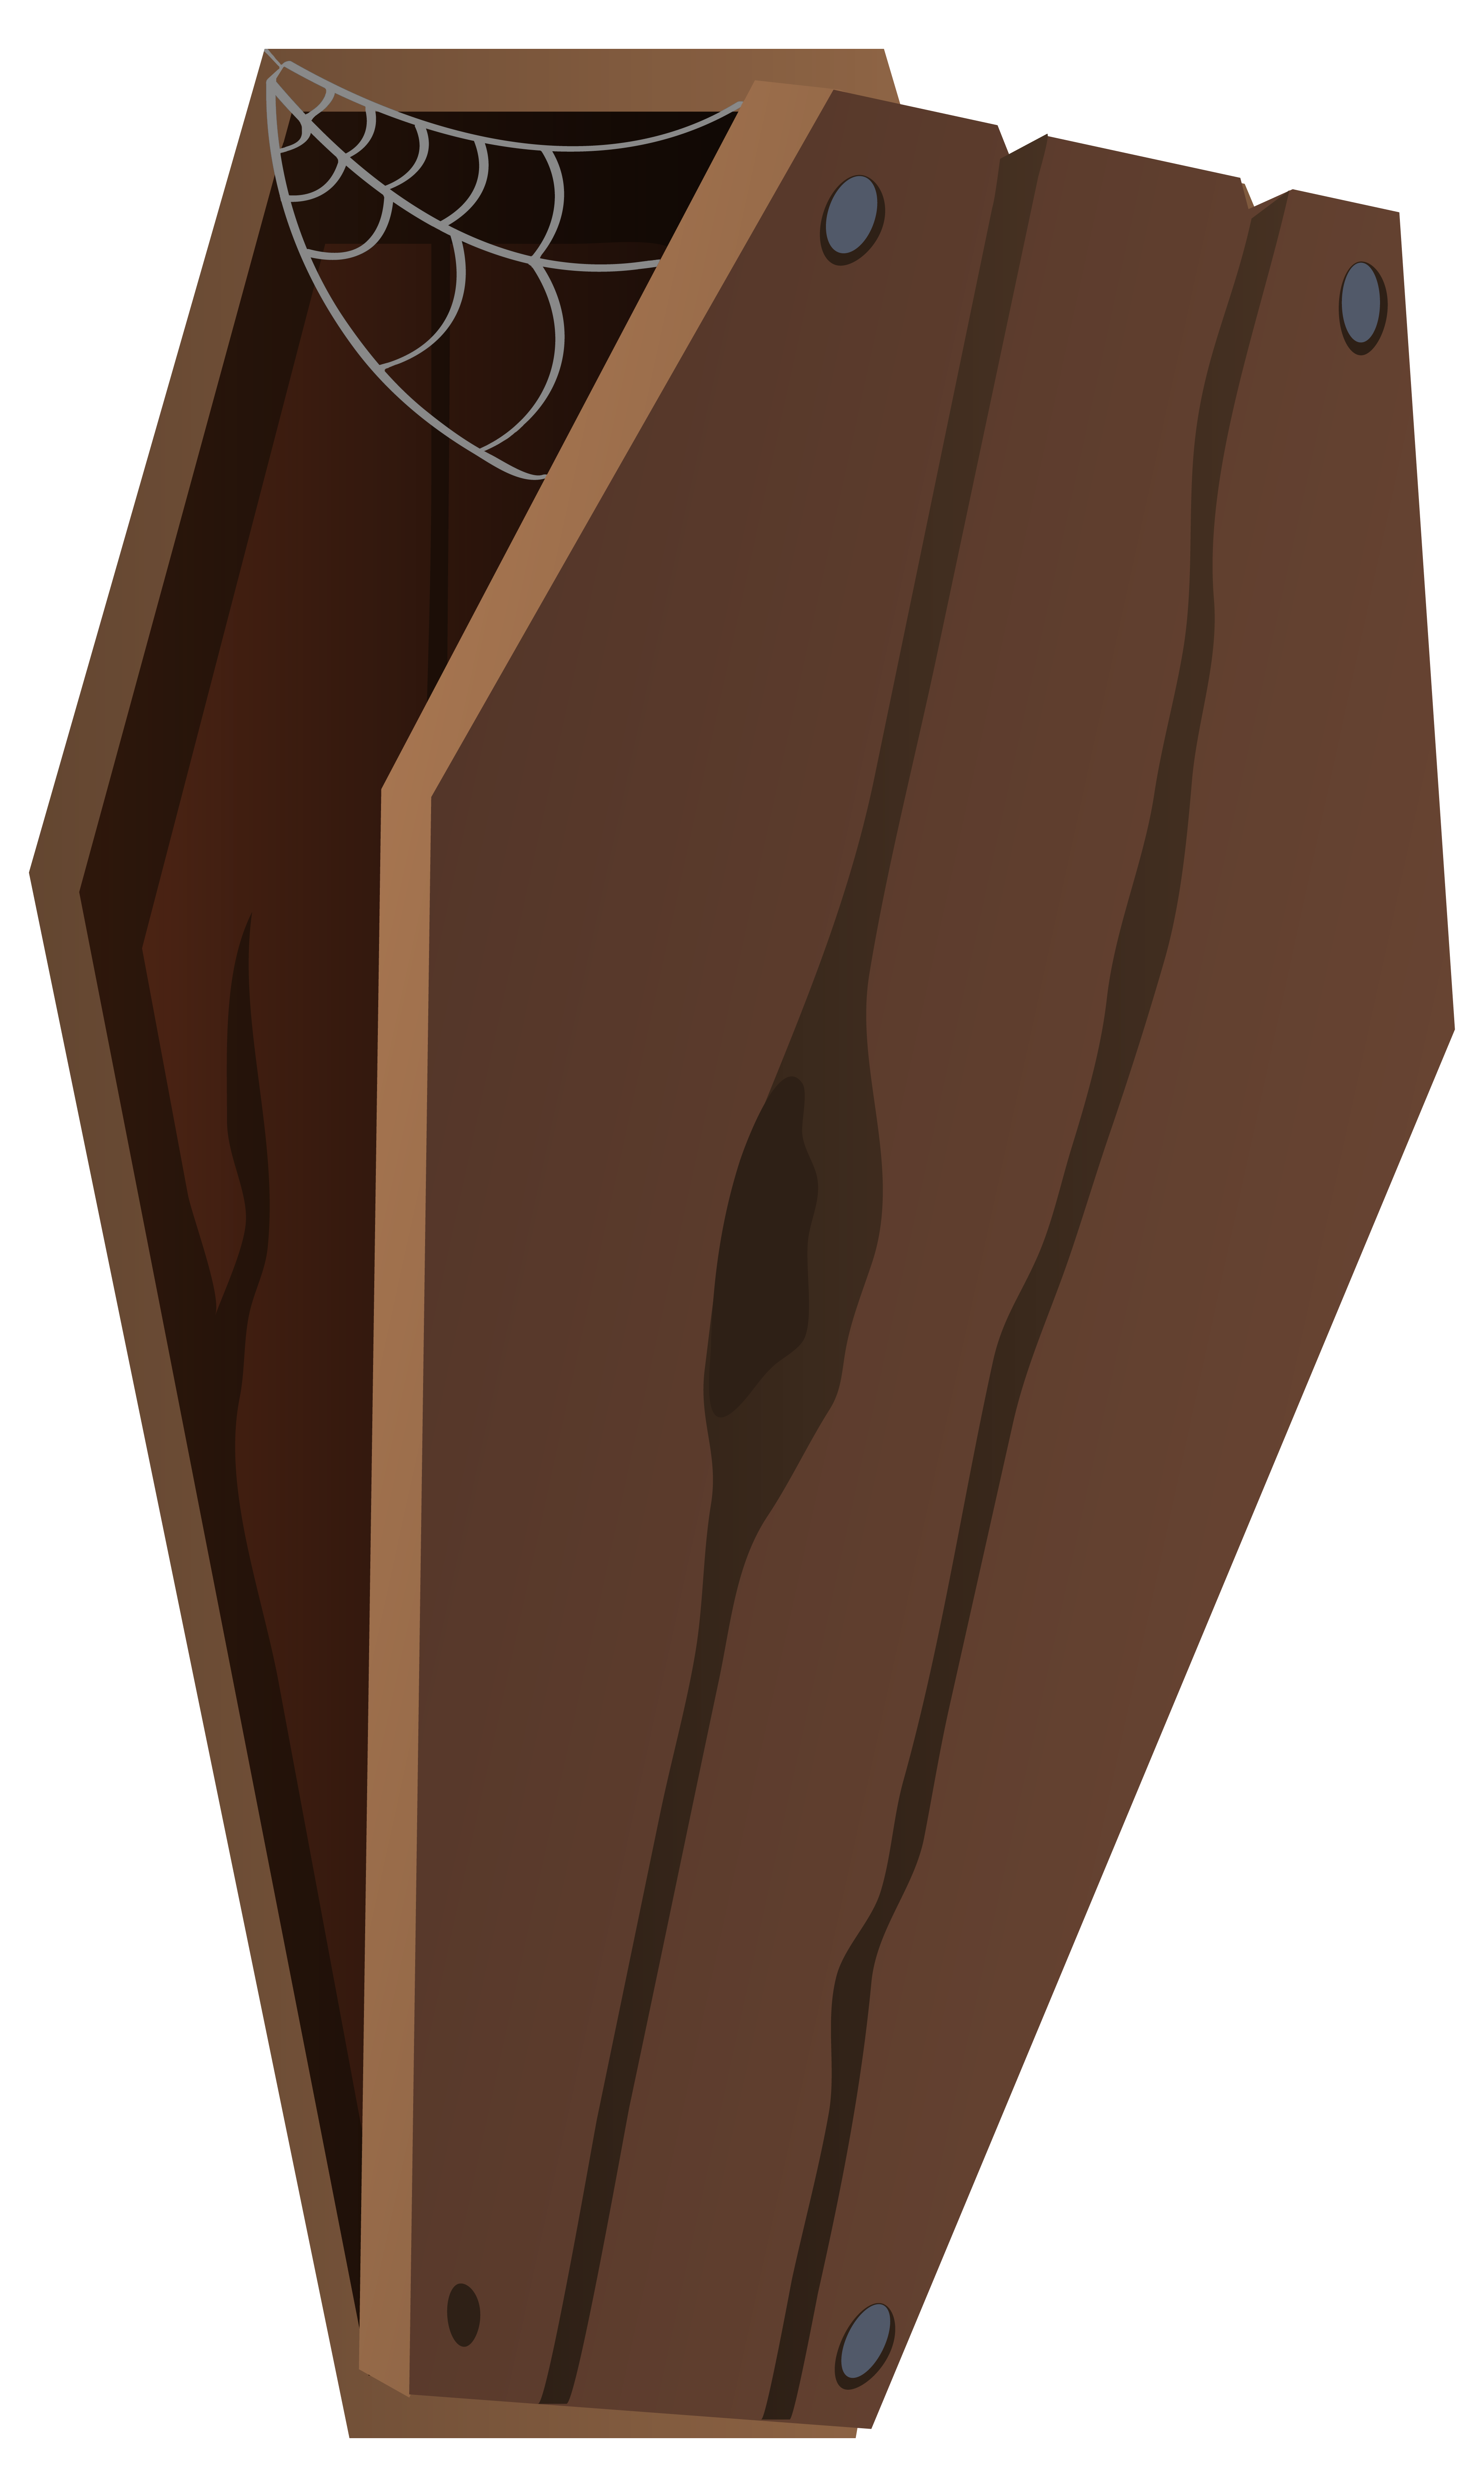 Coffin clipart  Image View Vertical PNG